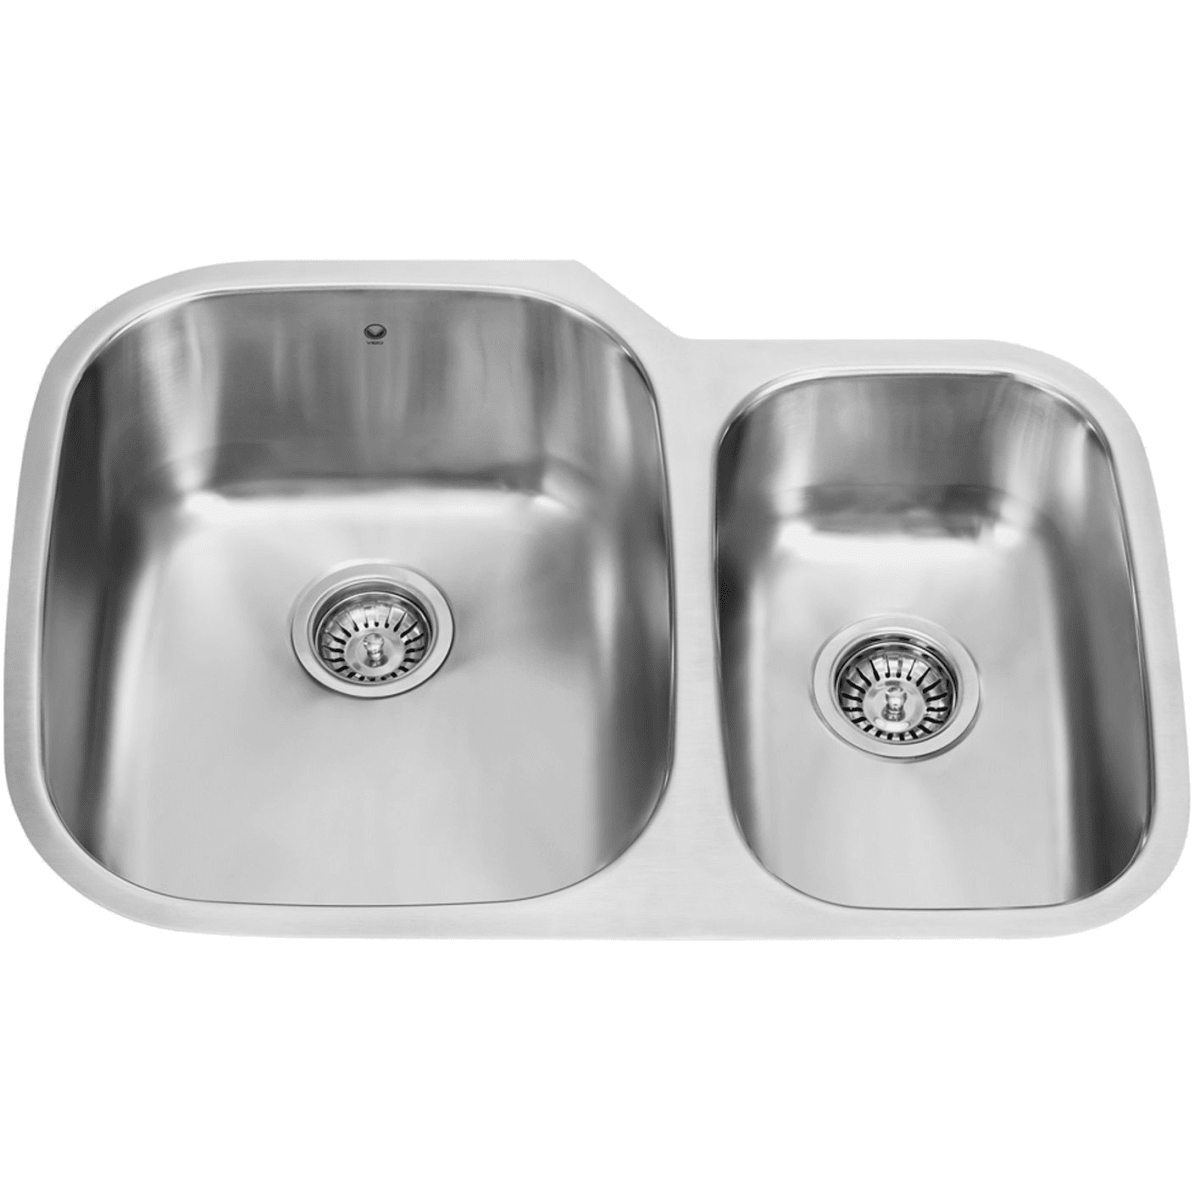 Vigo Vg3021l Stainless Steel 29 1 2 Double Basin Undermount Kitchen Sink With Cutting Board Faucet Com